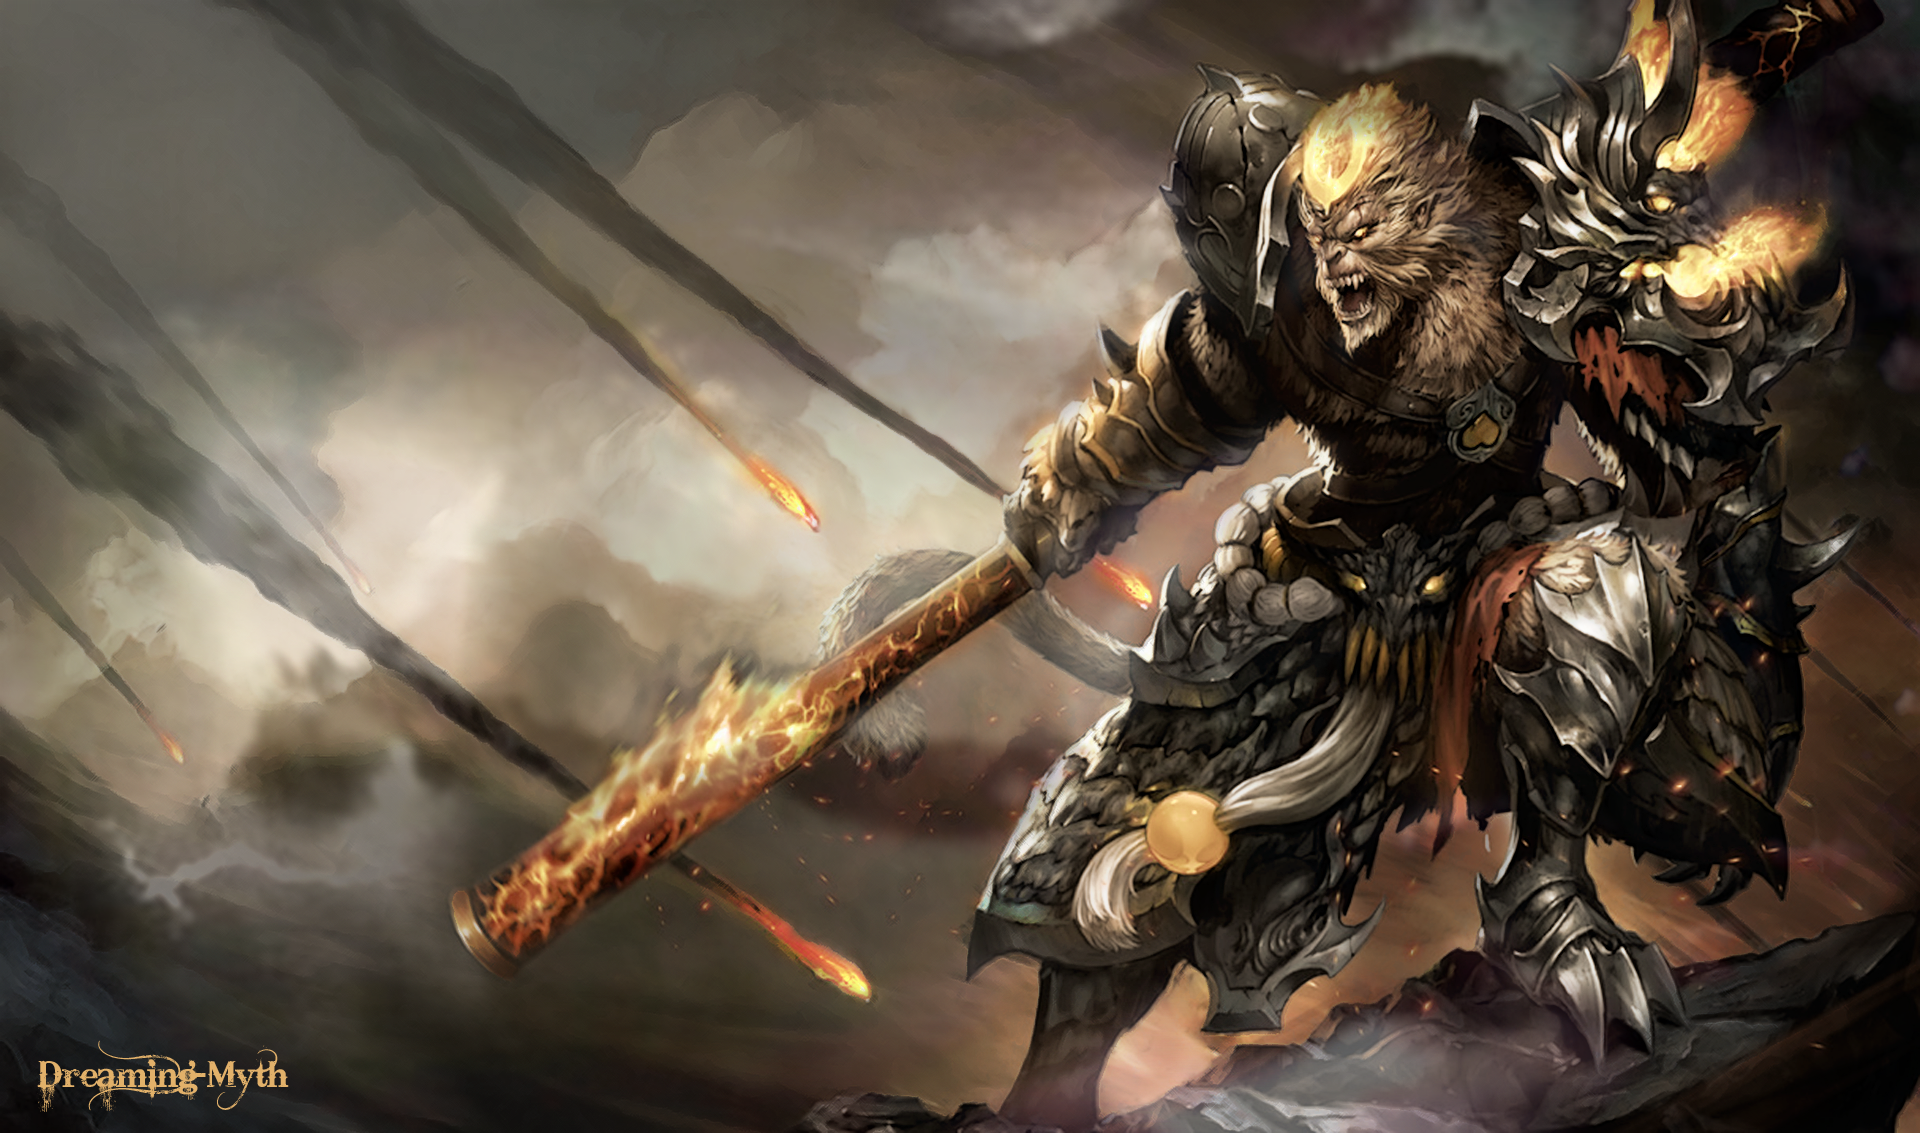 La última parada - Página 2 Chinese_general_wukong_wallpaper_by_dreaming_myth-d5oxg0t